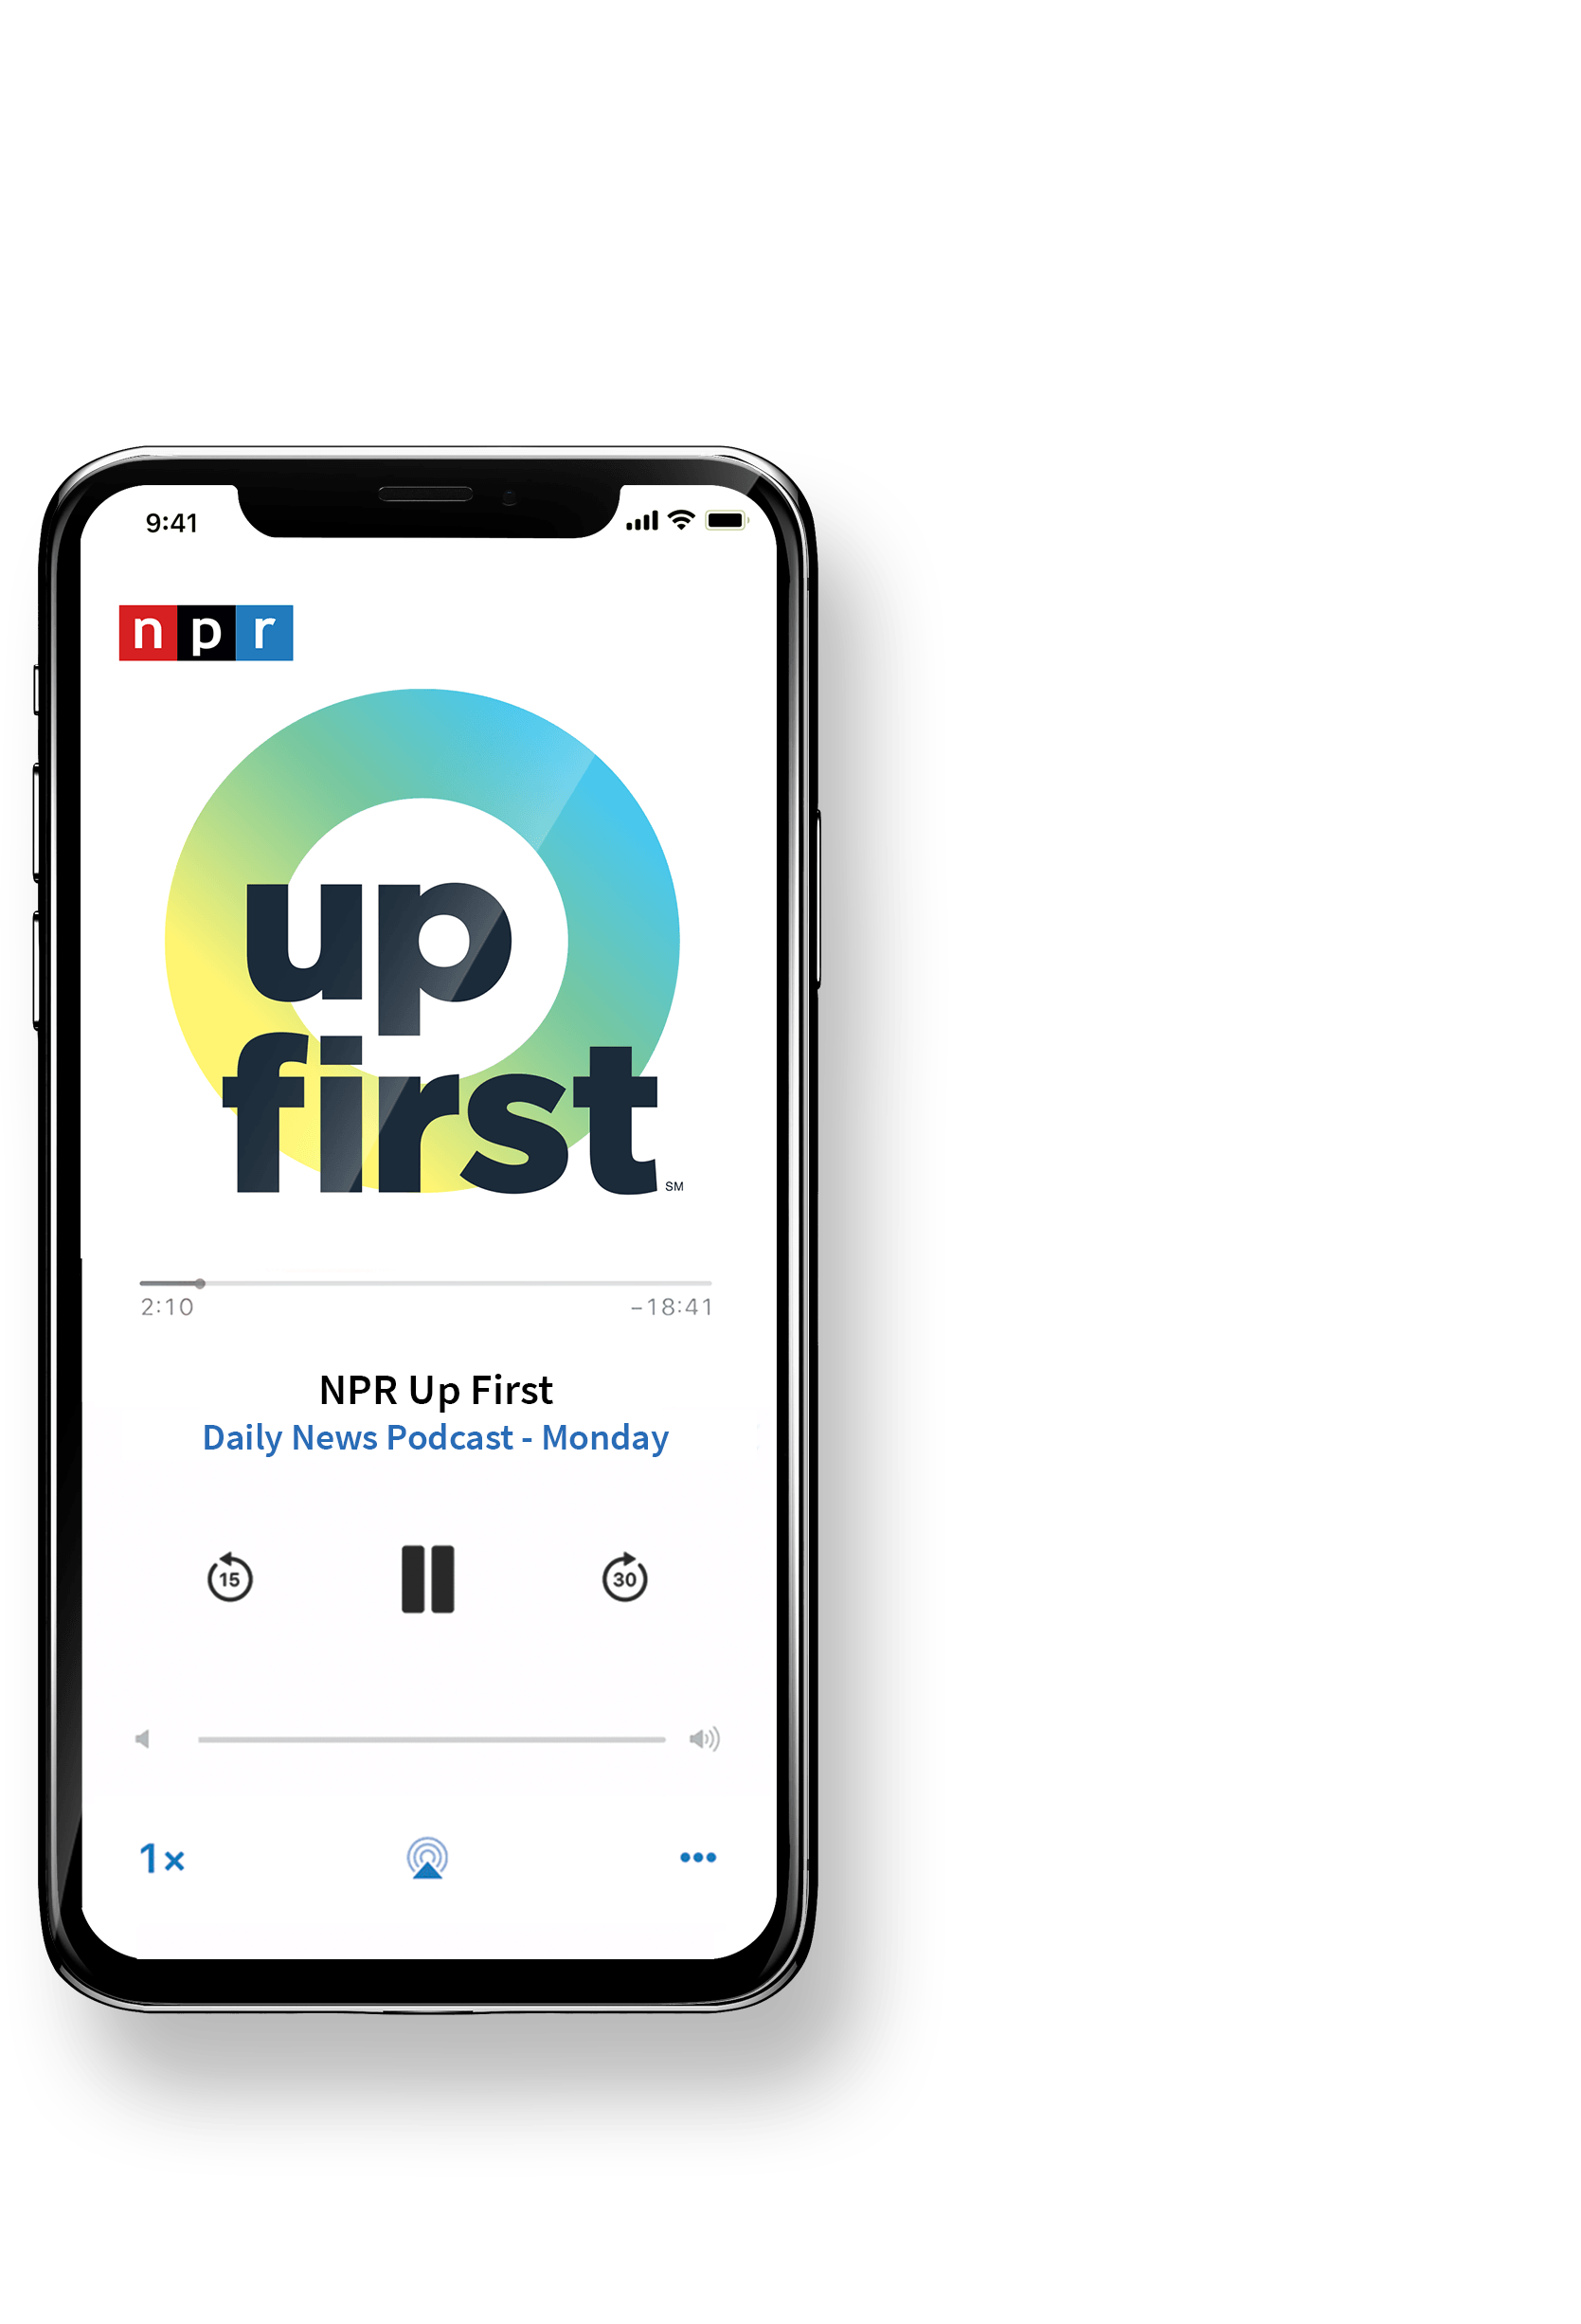 NPR Up First News Podcast Brand Design